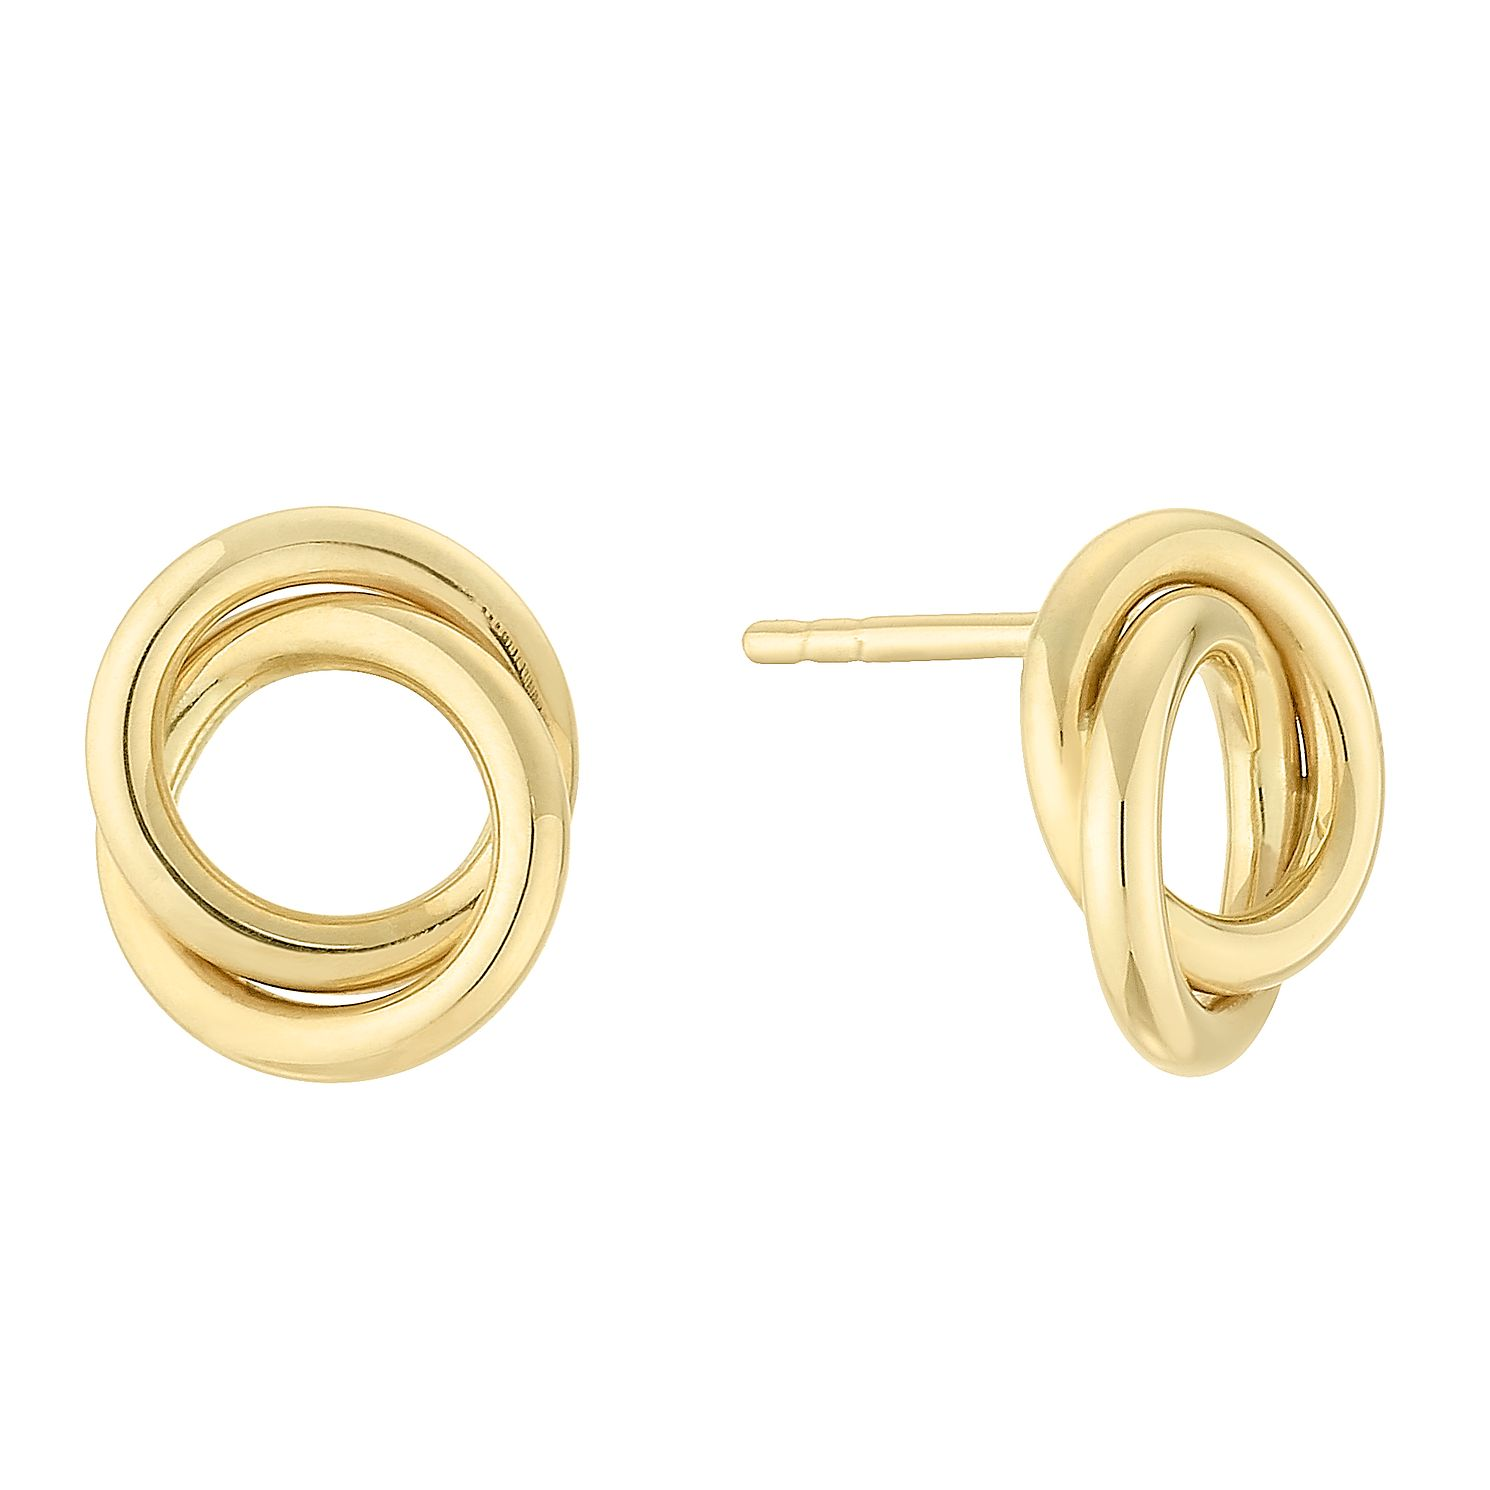 9ct Yellow Gold Open Knot Stud Earrings - Product number 4054482